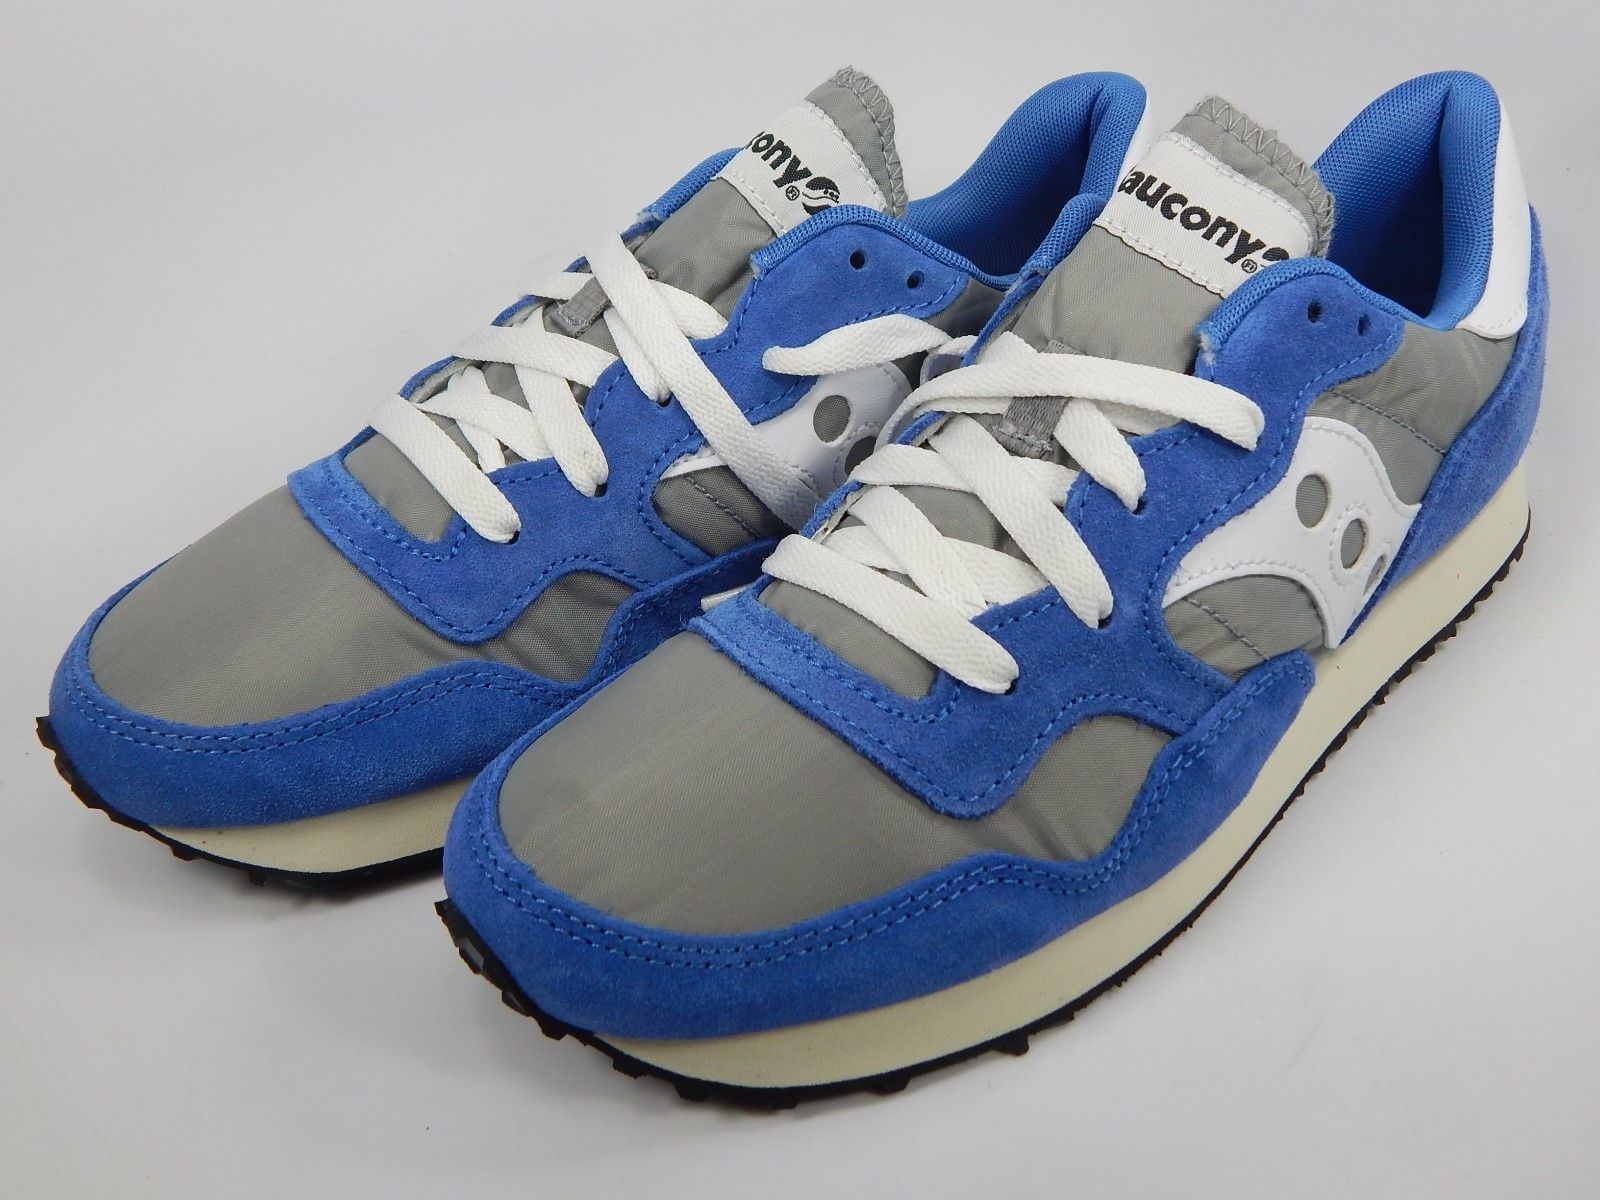 Saucony Originals DXN Trainer Vintage SMU Men's Shoes Size 9 M EU 42.5 S70369-15